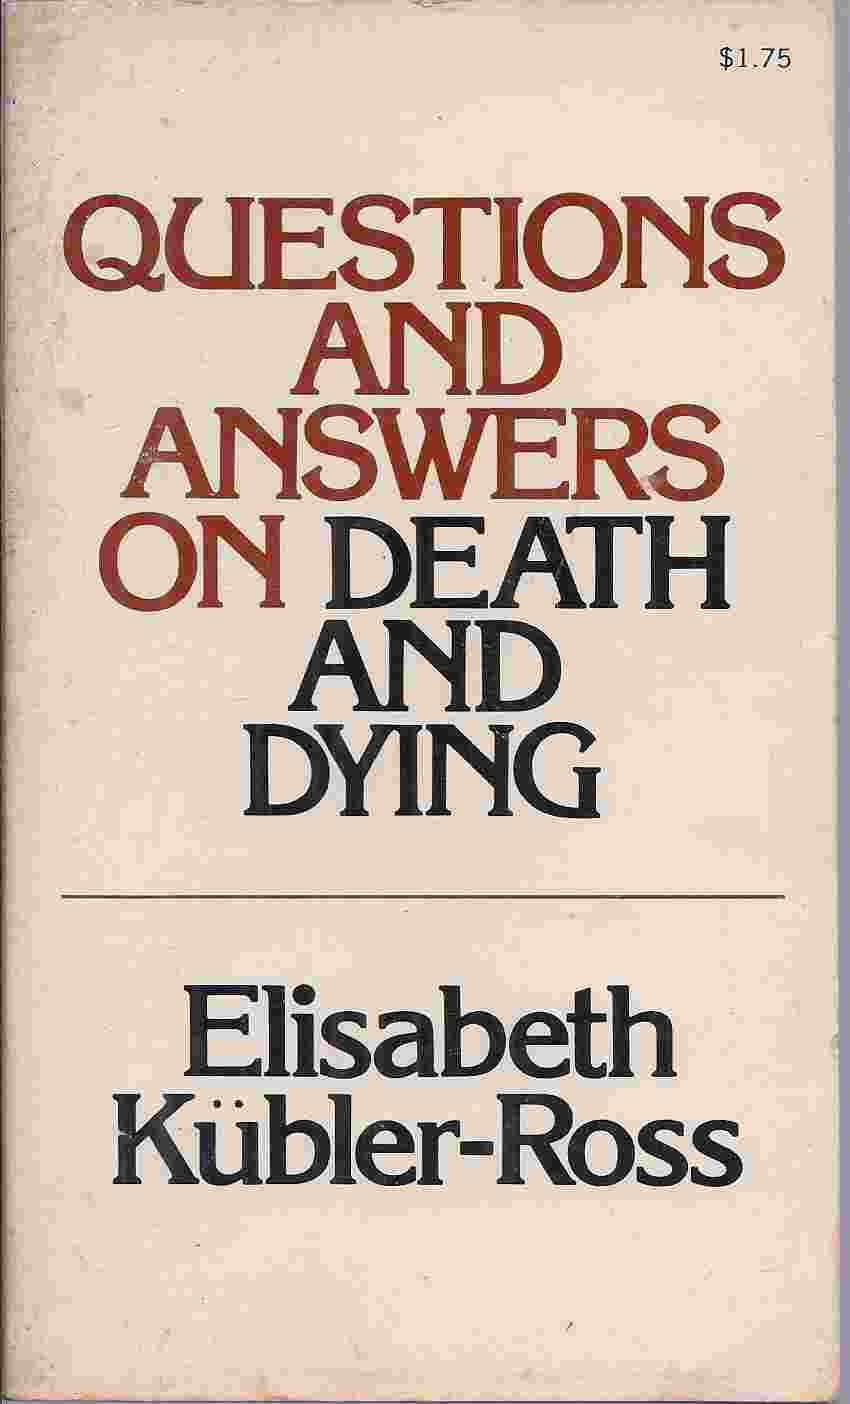 Questions and Answers on Death and Dying: A Companion Volume To On Death And Dying, Elizabeth Kubler-Ross